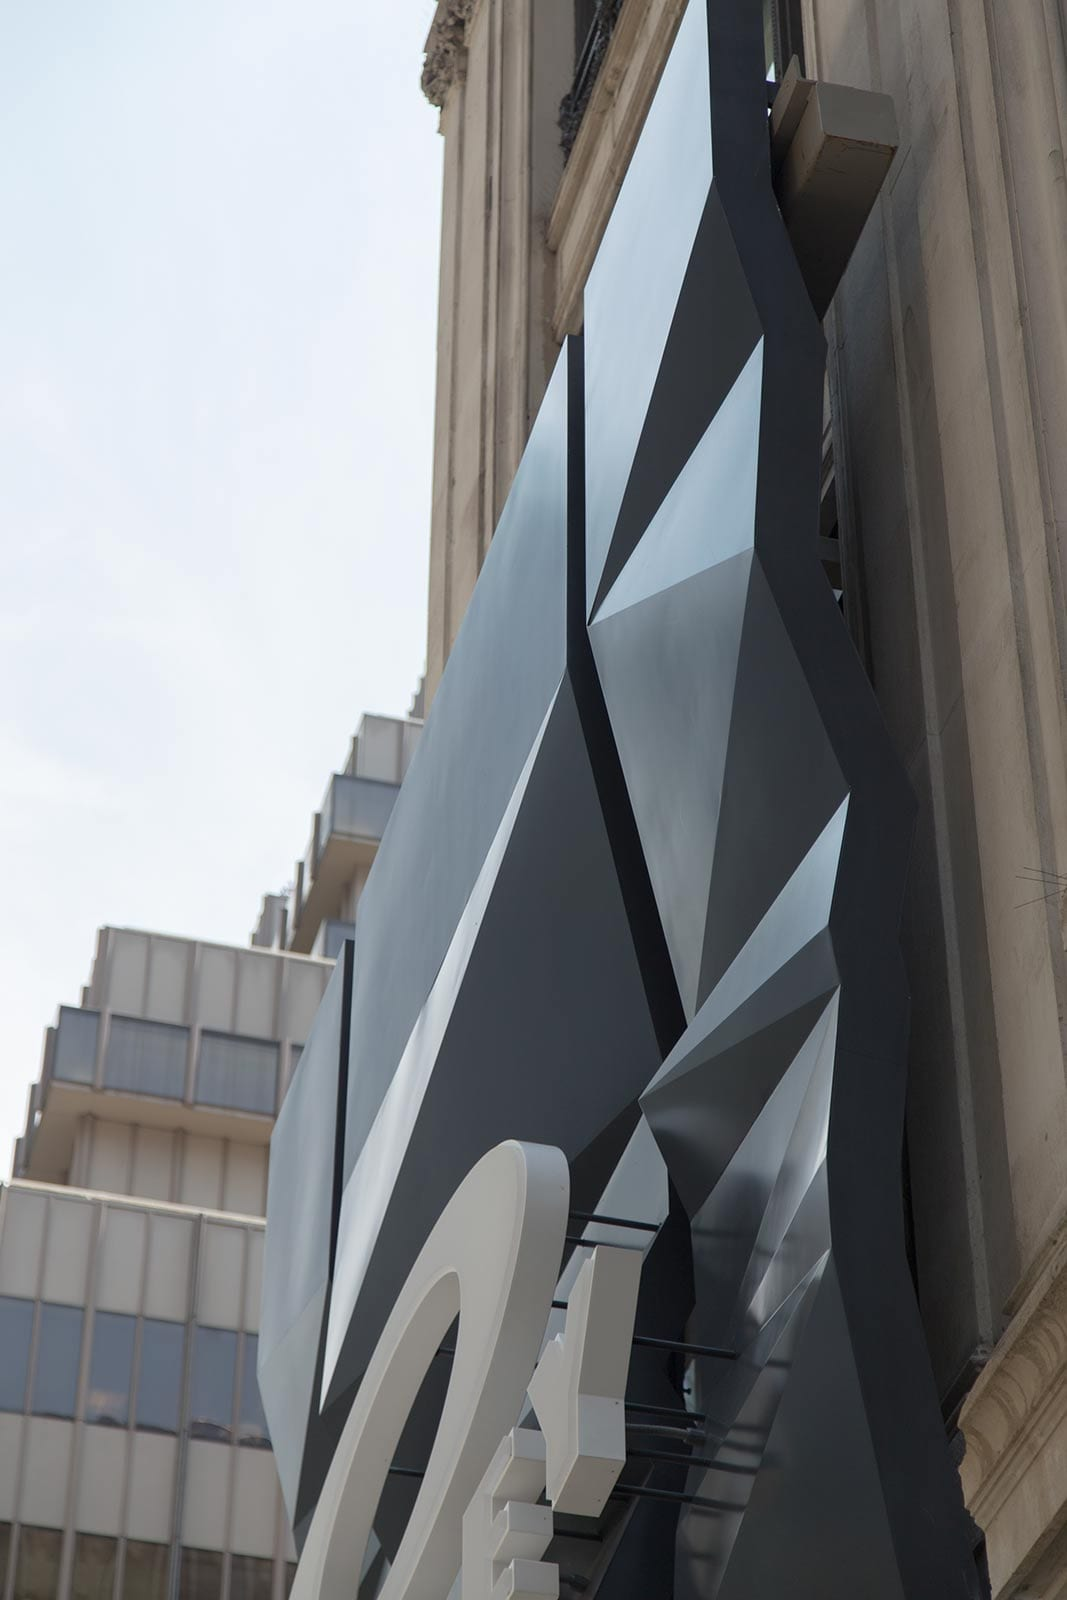 Details of Oakley Fifth Avenue in New York City.